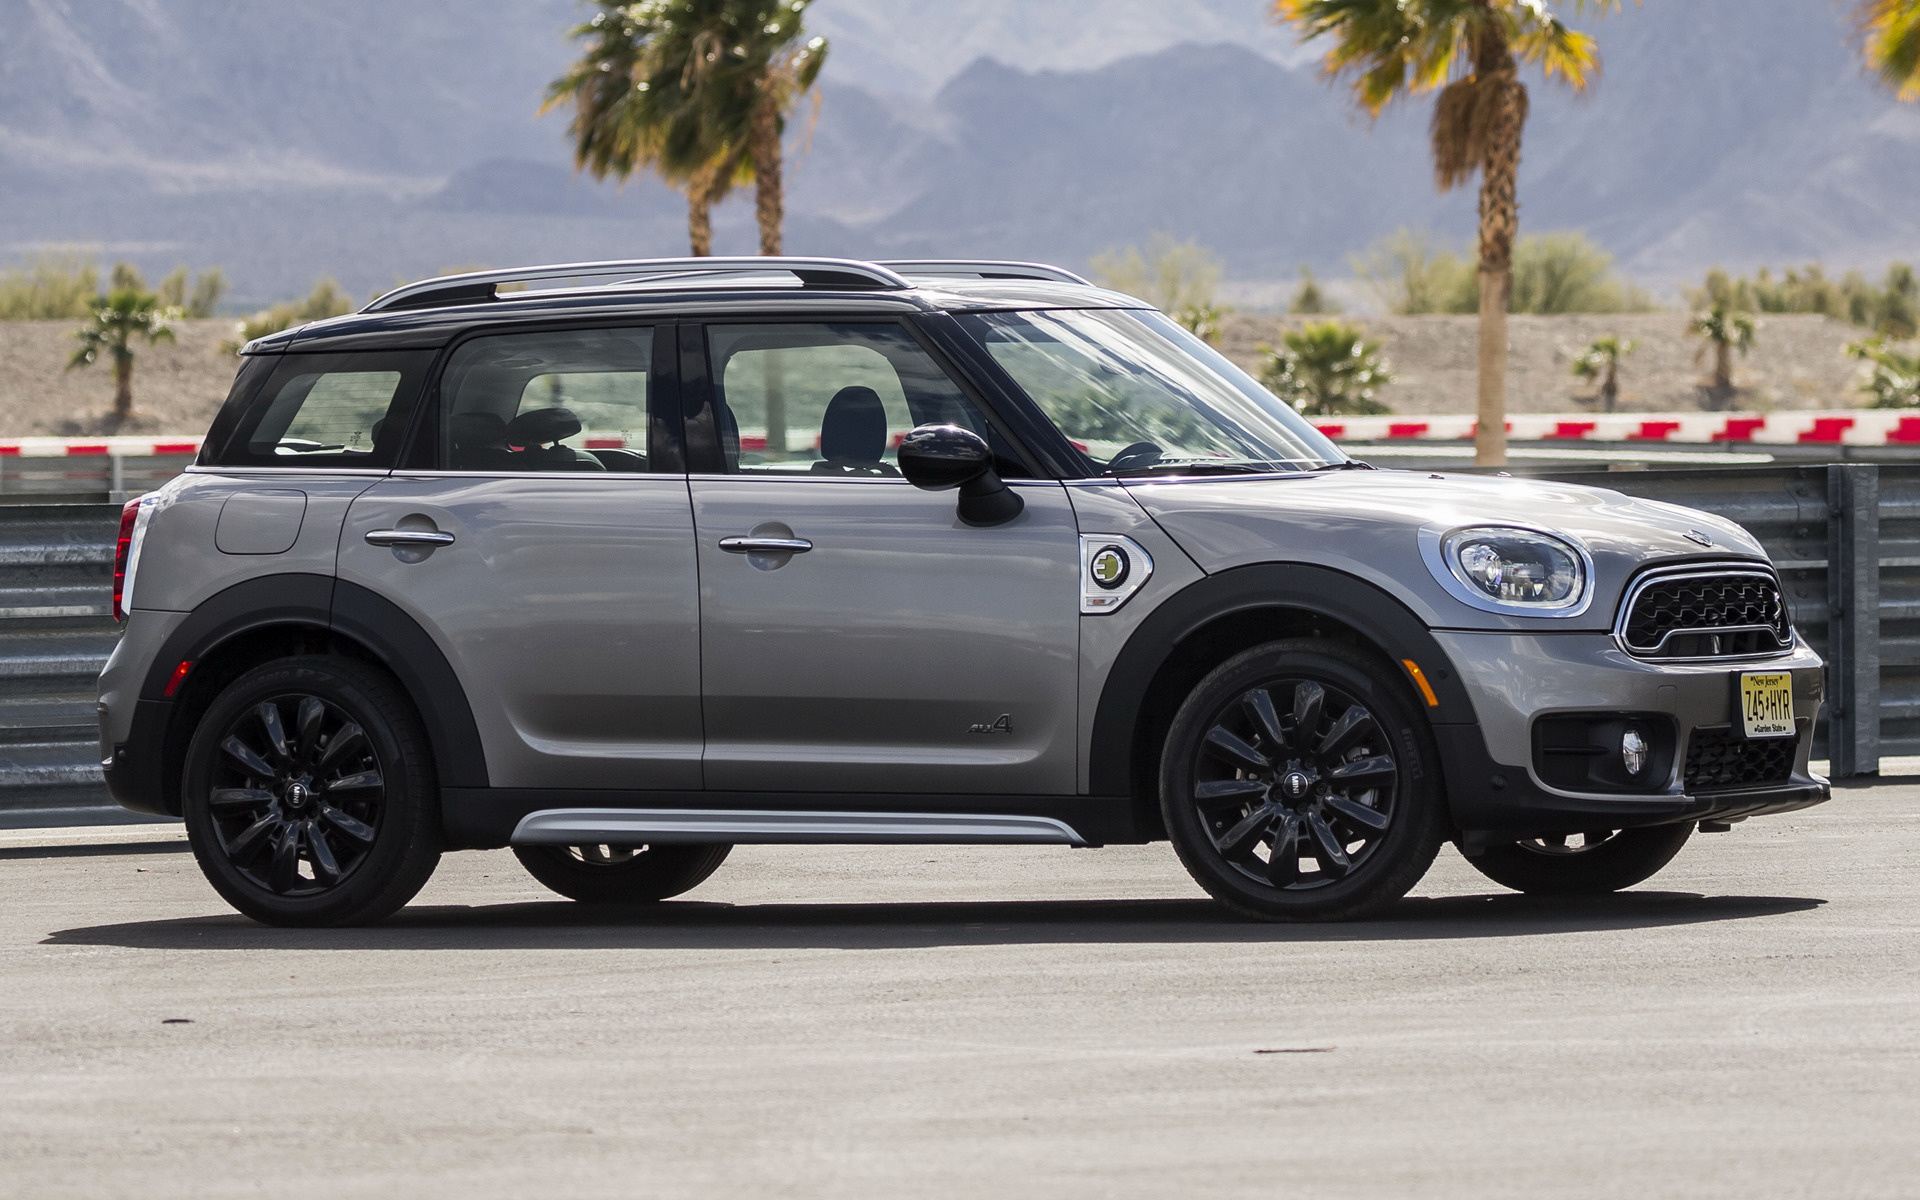 All Car Wallpapers Hd Mini Cooper S E Countryman 2018 Us Wallpapers And Hd